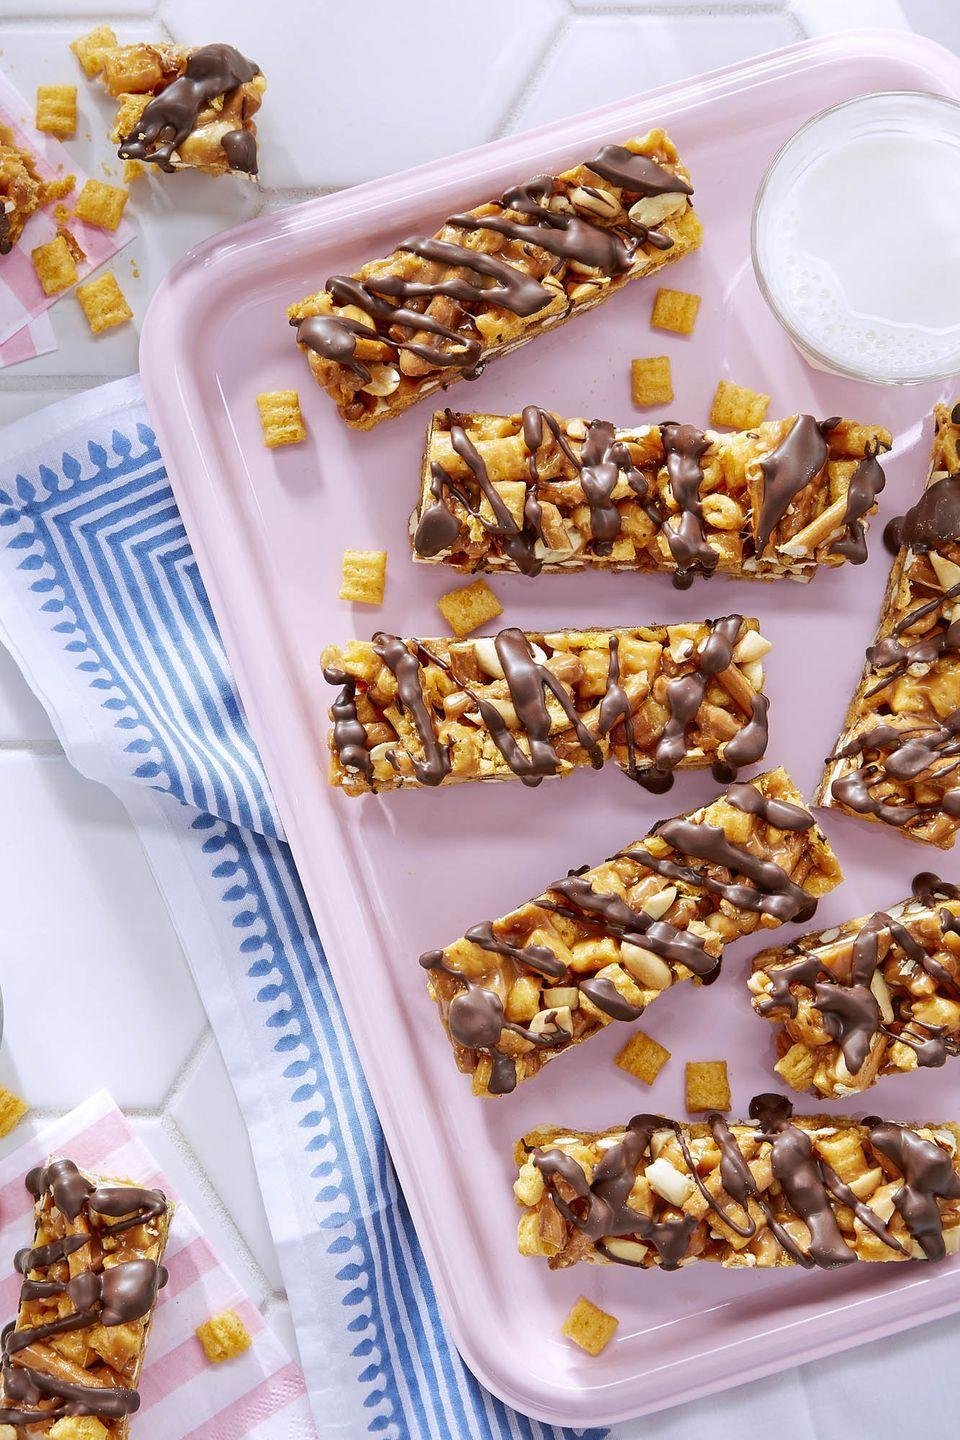 """<p>Pretzel sticks and cereal pieces give these candy bars a delicious salty-sweet blend.</p><p><strong><a href=""""https://www.countryliving.com/food-drinks/recipes/a46344/peanutty-capn-crunch-candy-bars-recipe/"""" rel=""""nofollow noopener"""" target=""""_blank"""" data-ylk=""""slk:Get the recipe."""" class=""""link rapid-noclick-resp"""">Get the recipe.</a></strong></p><p><a class=""""link rapid-noclick-resp"""" href=""""https://www.amazon.com/Cuisinart-719-16-Classic-Stainless-Saucepan/dp/B00008CM69/?tag=syn-yahoo-20&ascsubtag=%5Bartid%7C10050.g.2216%5Bsrc%7Cyahoo-us"""" rel=""""nofollow noopener"""" target=""""_blank"""" data-ylk=""""slk:SHOP SAUCEPANS"""">SHOP SAUCEPANS</a></p>"""